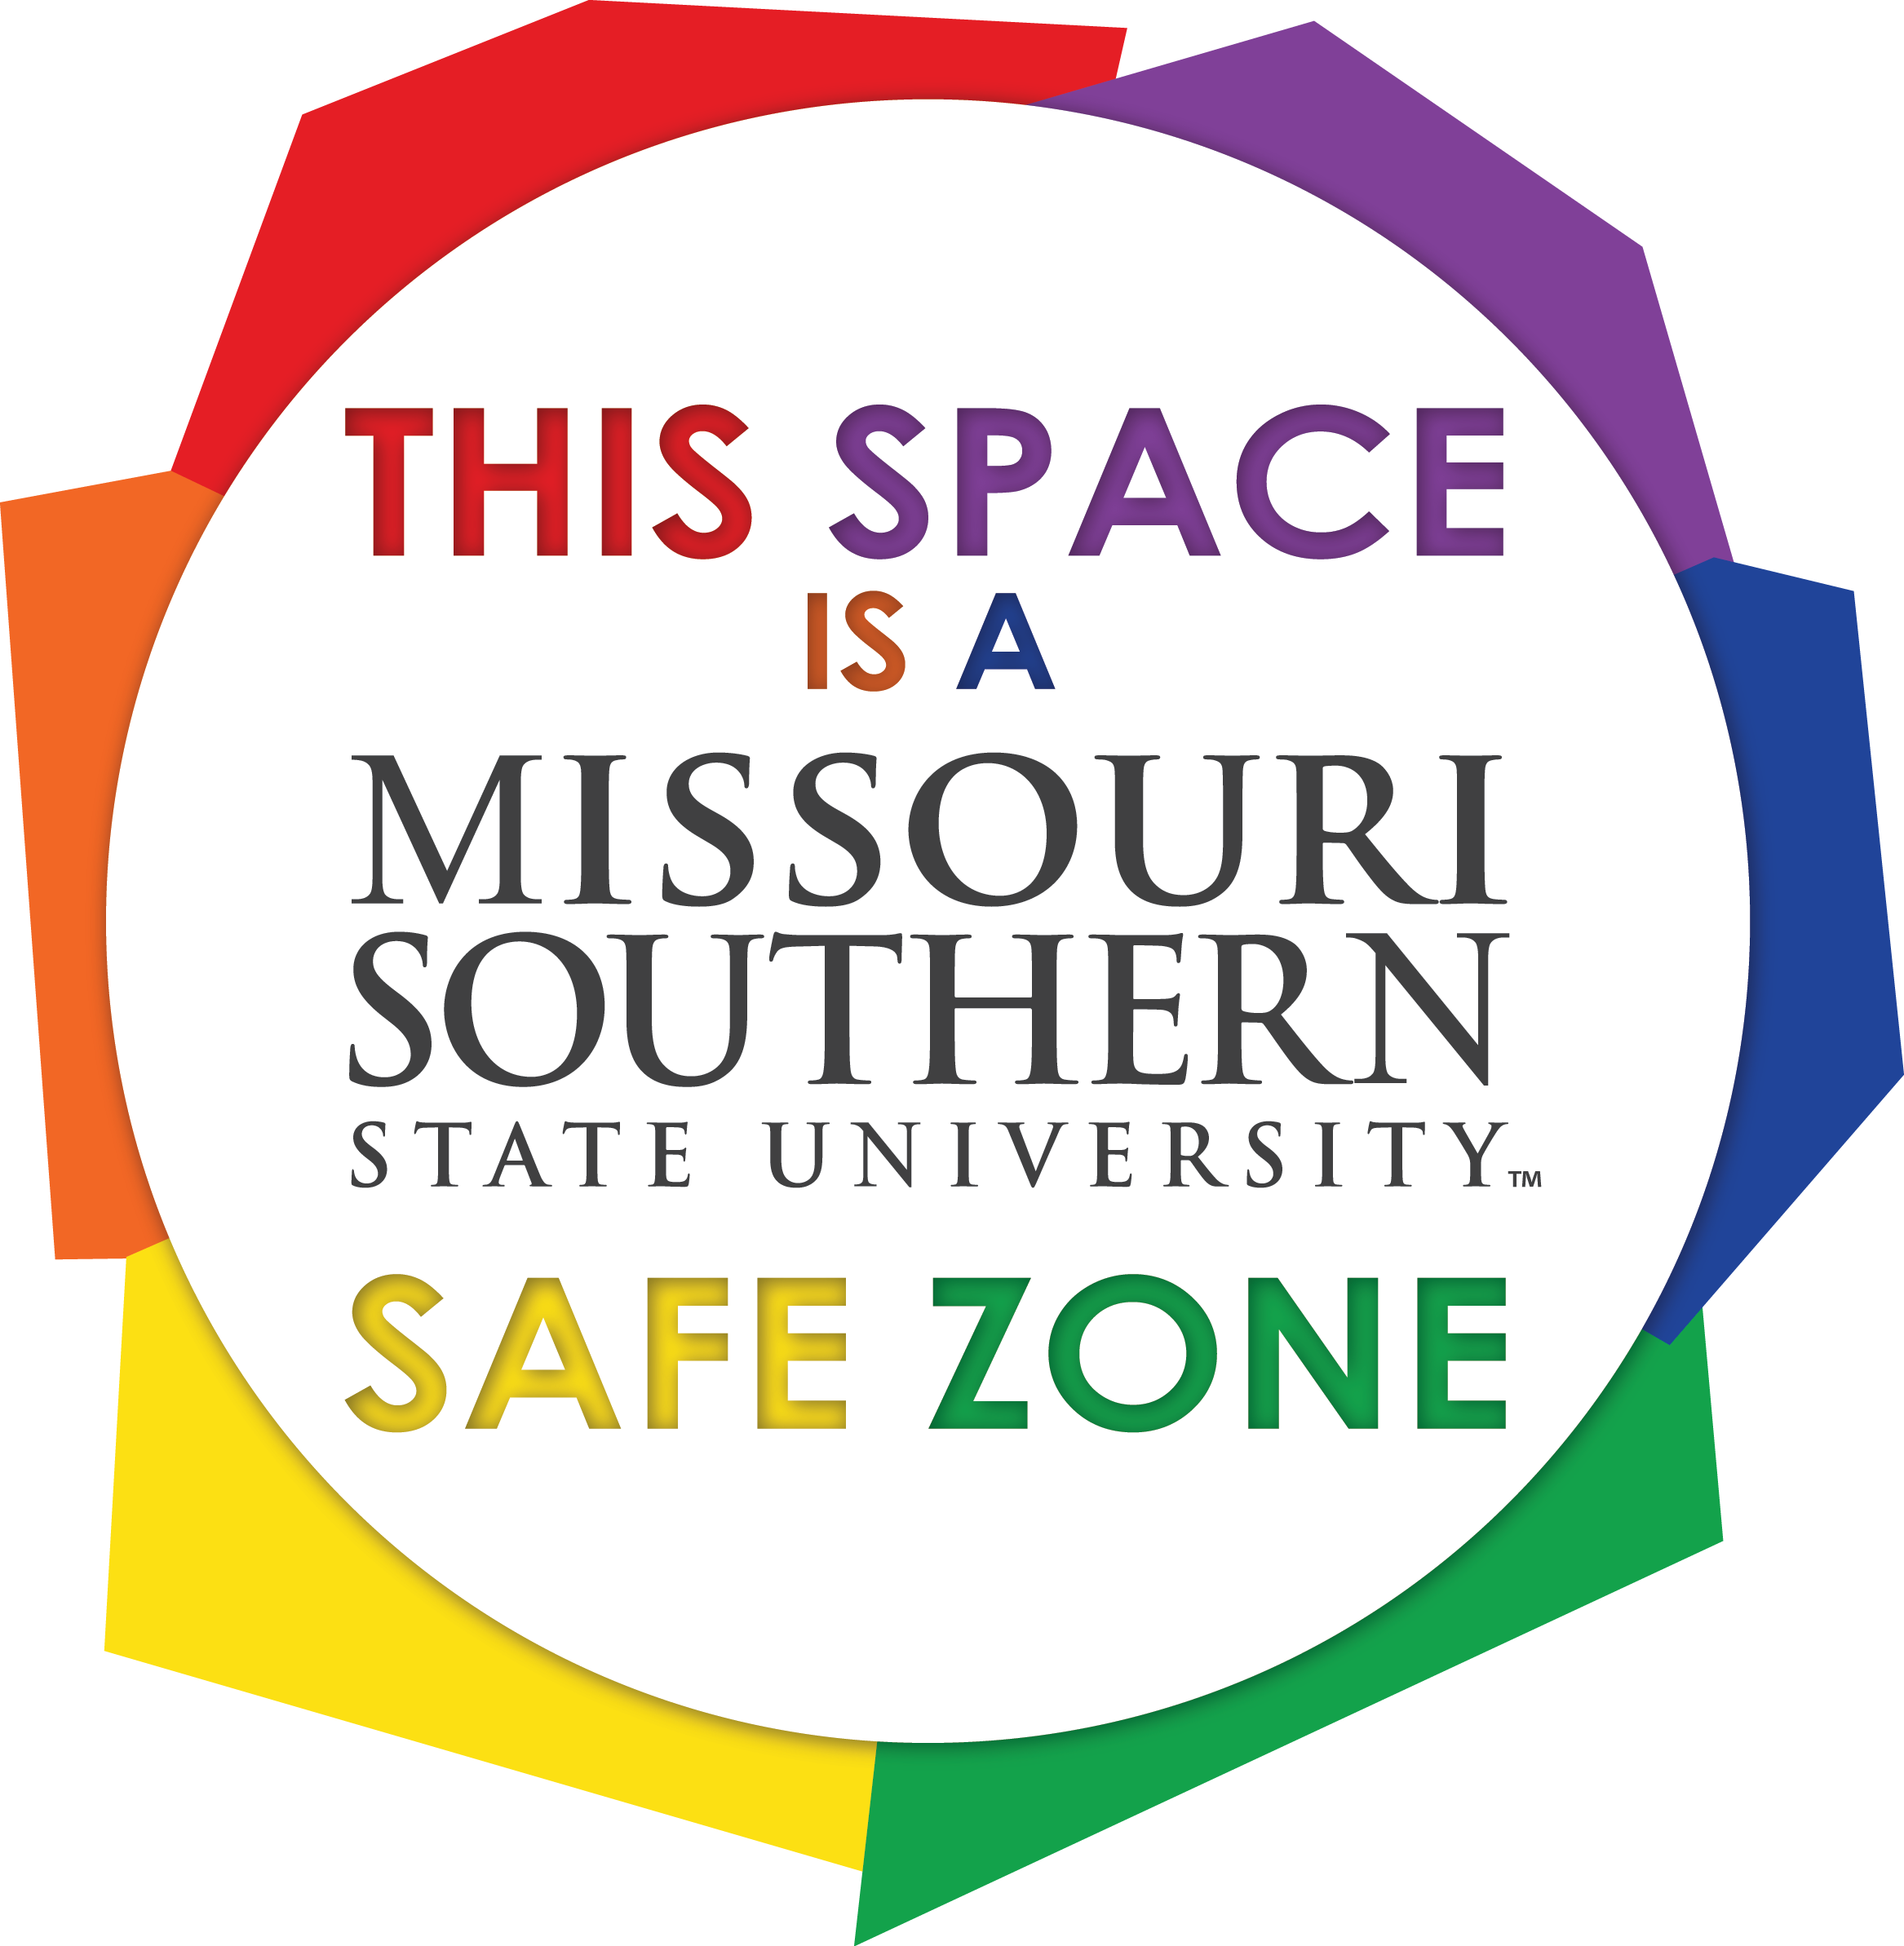 Safe Zones available across campus